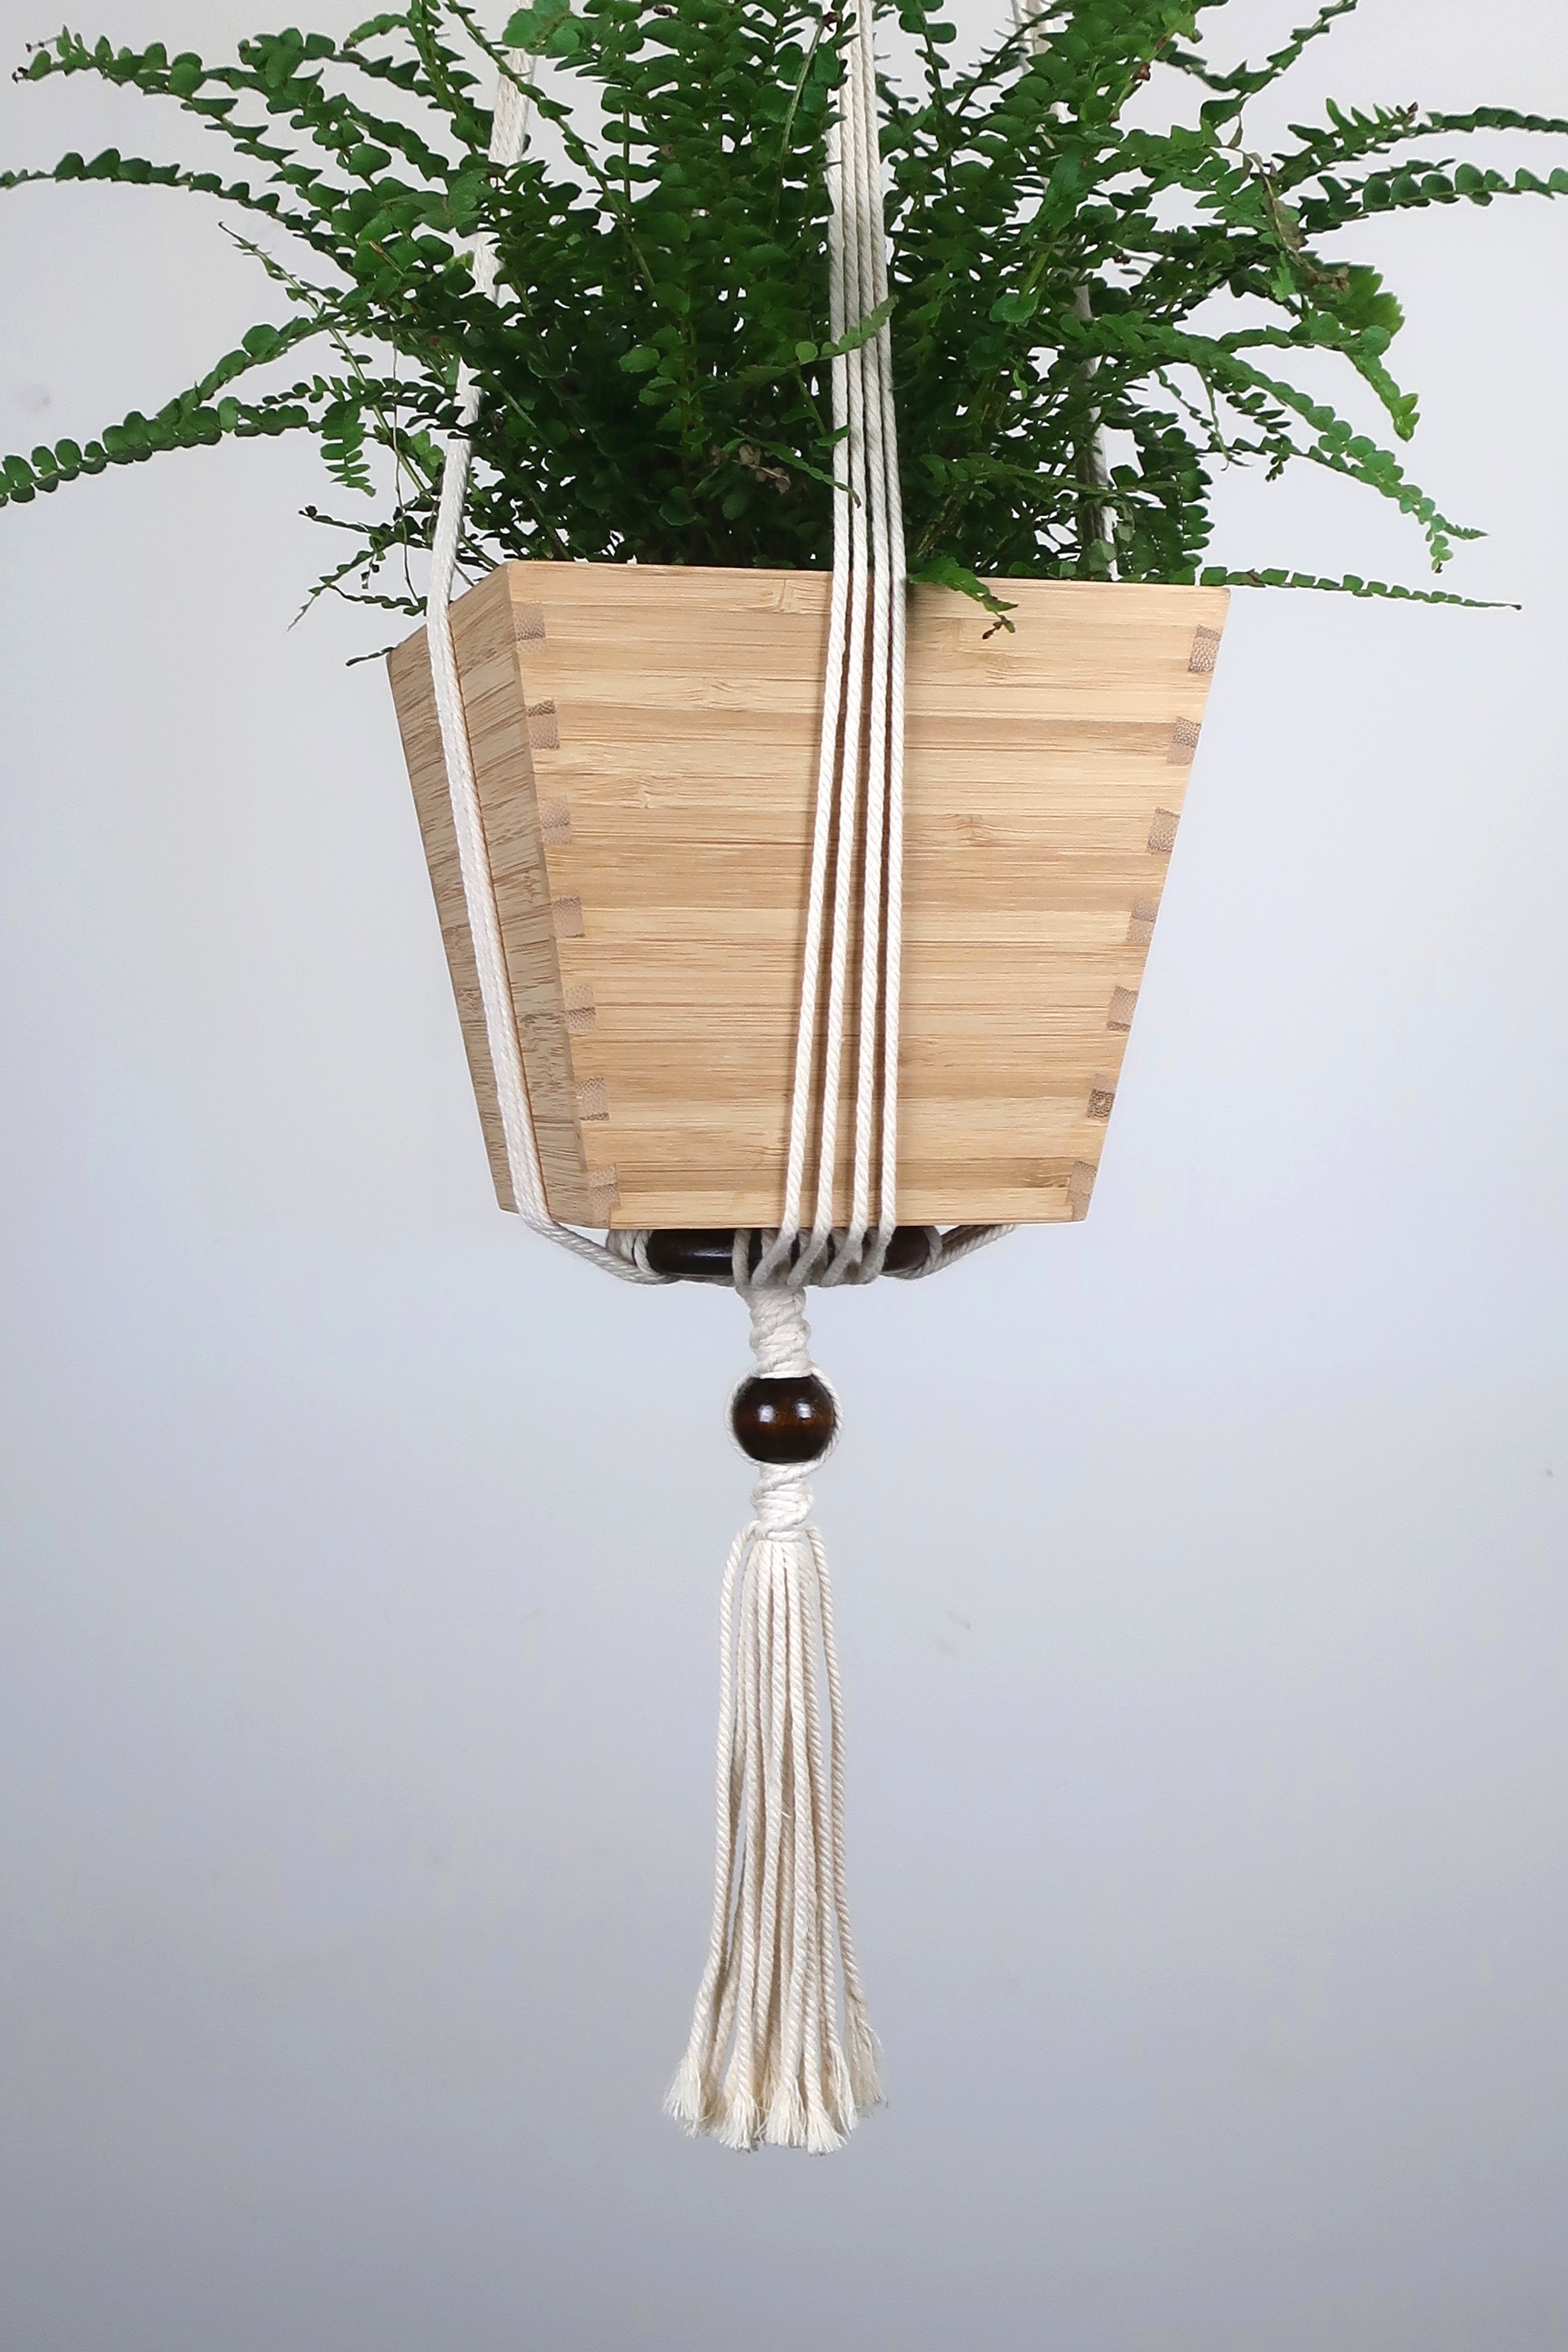 Suspension pour plante en macram bymadjo shanti d co - Faire macrame suspension ...